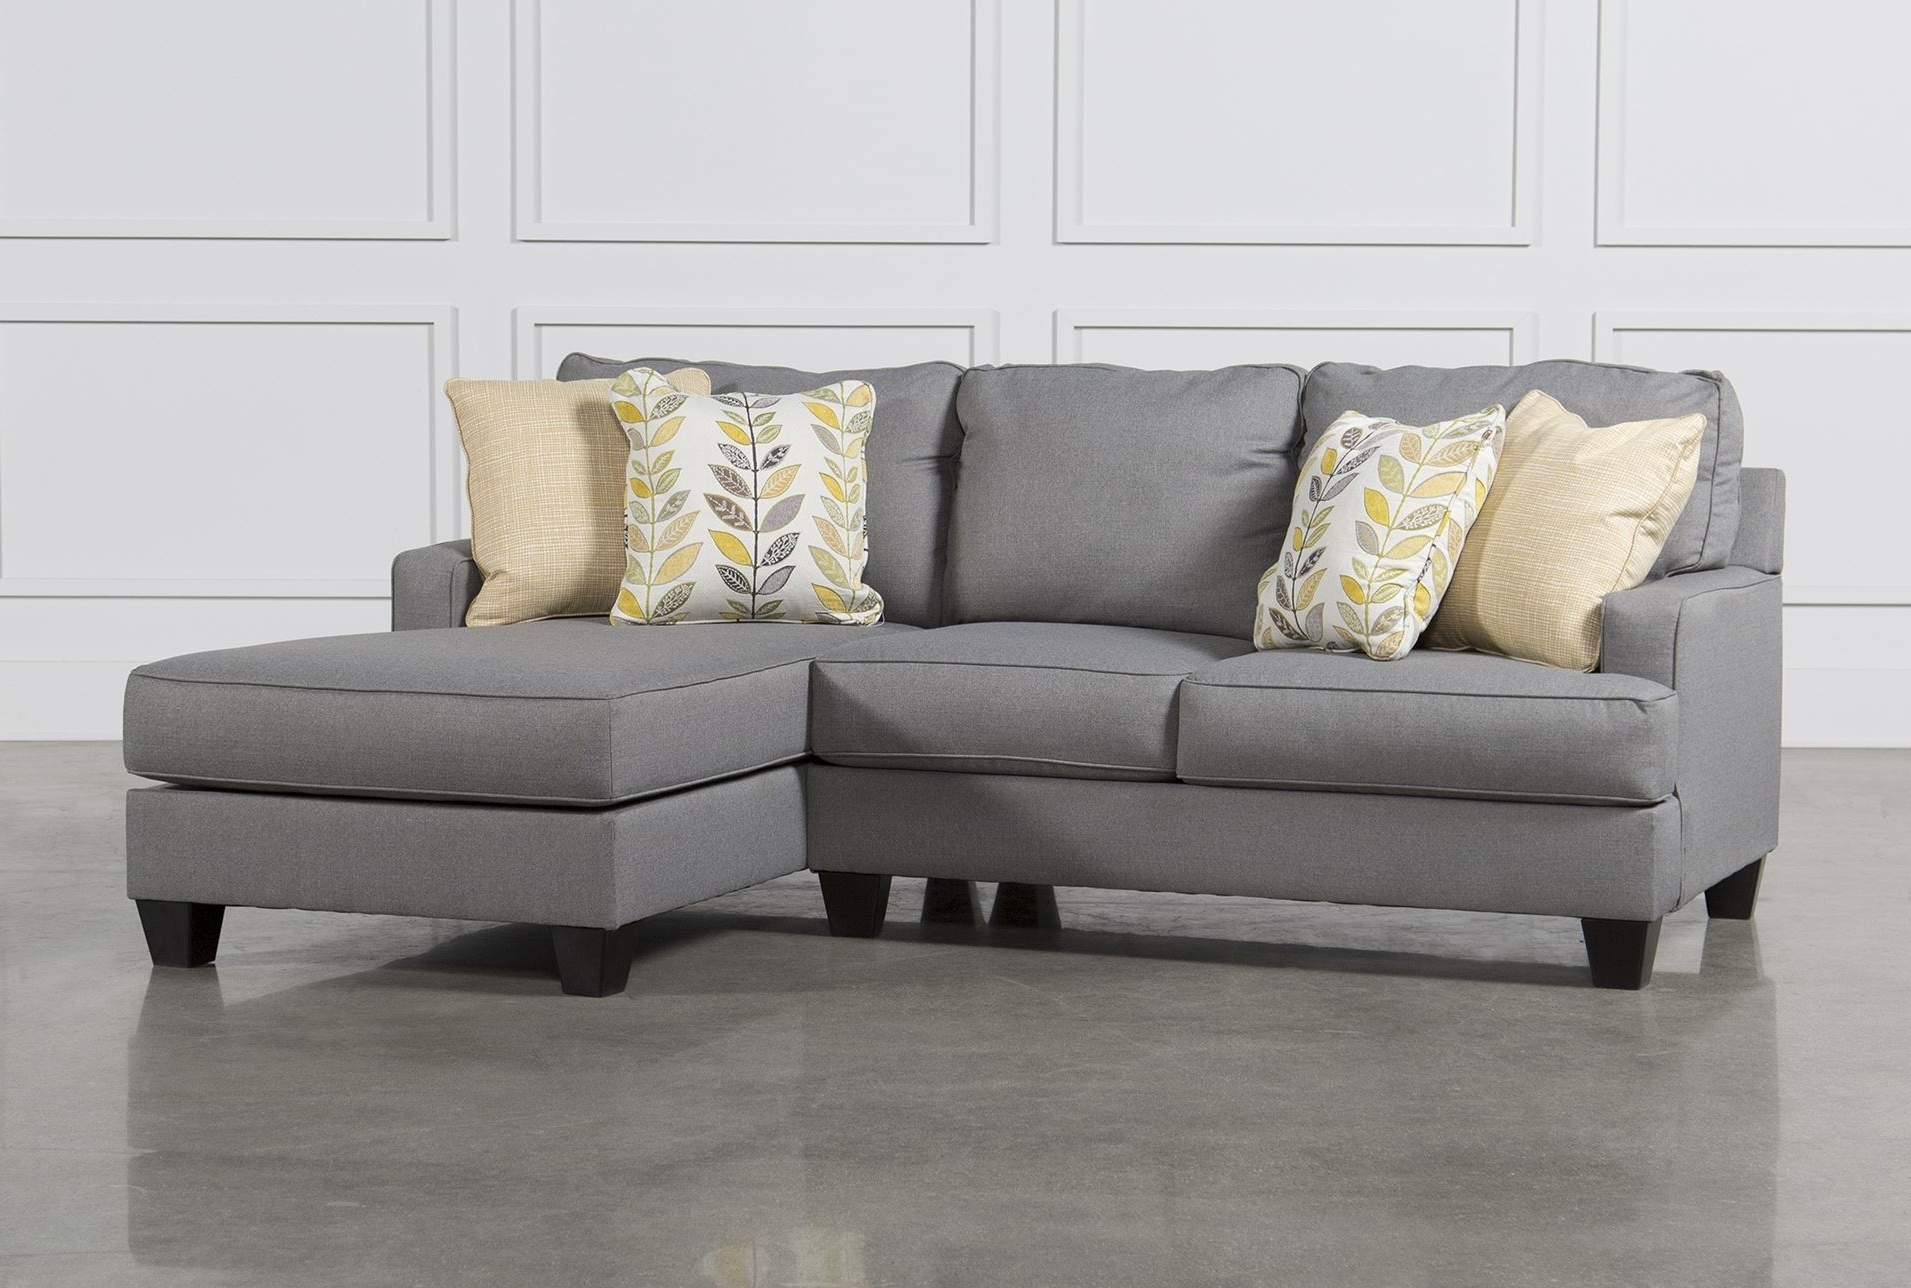 Well Known 2 Piece Sectional Sofas With Chaise Within Chamberly 2 Piece Sectional W/raf Chaise – Signature (View 4 of 15)